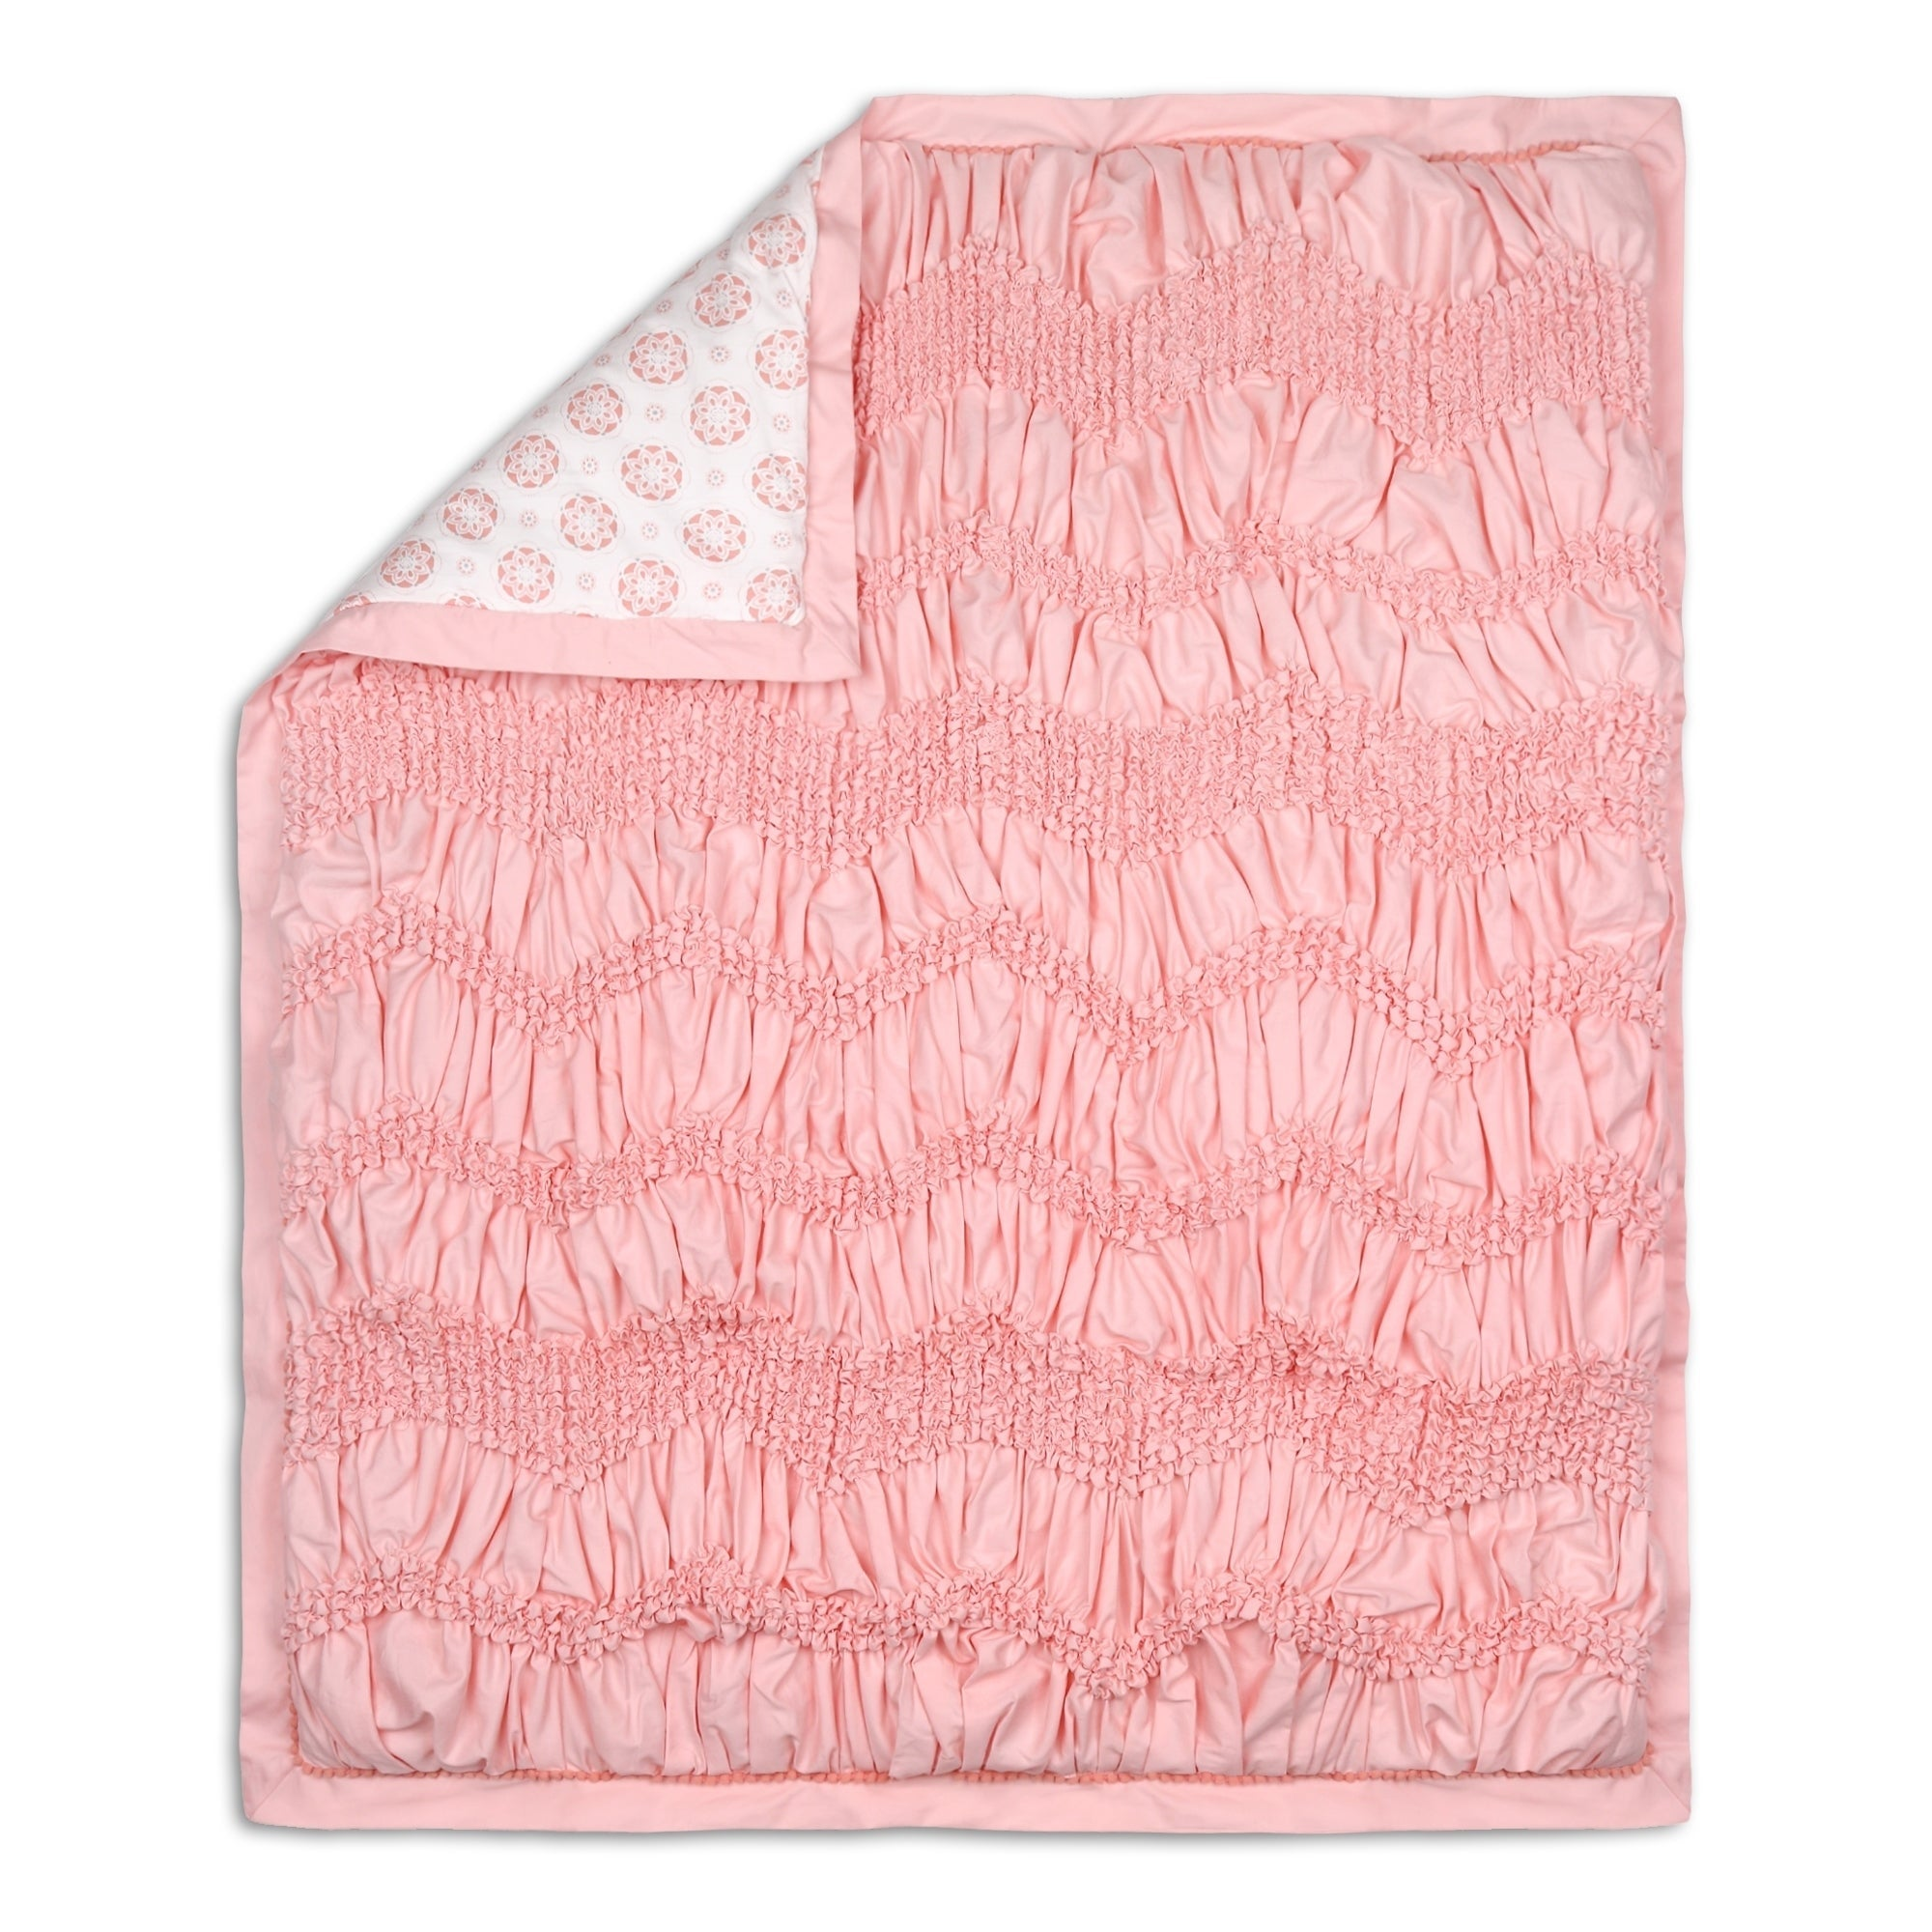 The Peanutshell Jayden Quilt Pink Chevron Neutral Cotton - Diamond Home USA